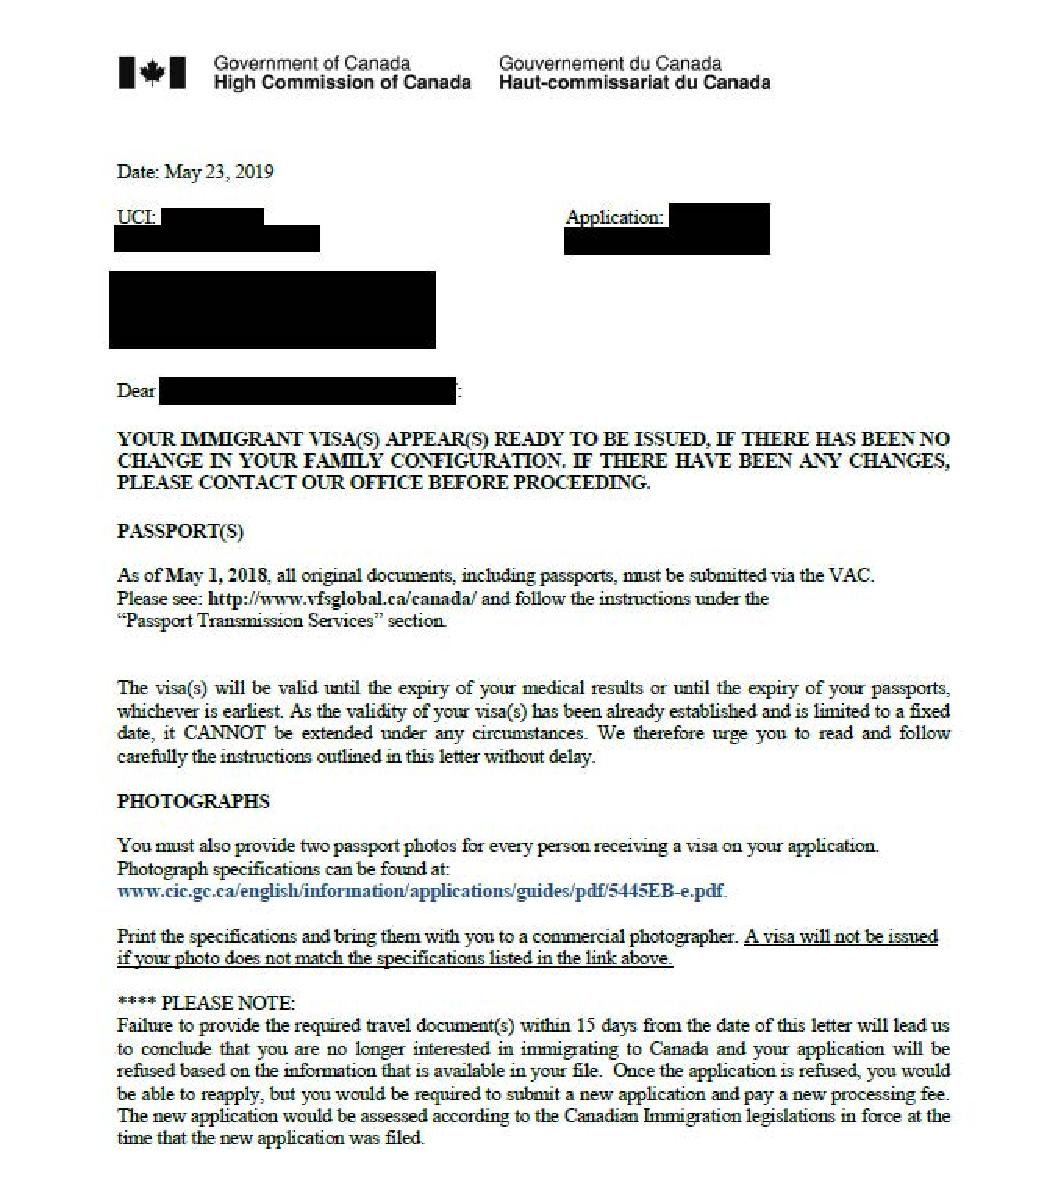 Passport request letter_SAMPLE-page-001